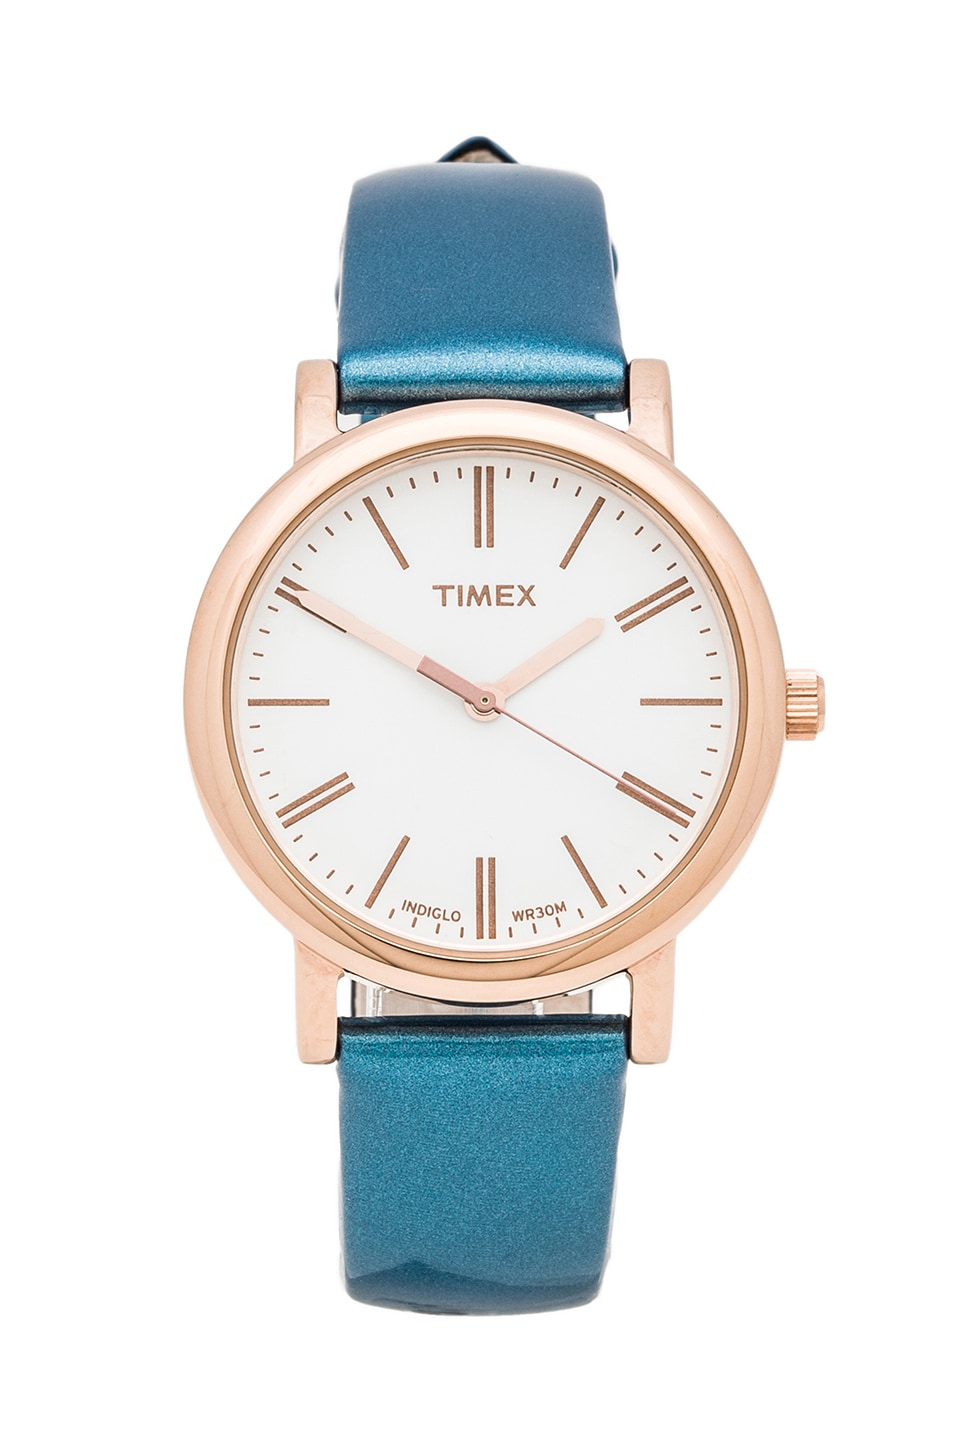 Timex Originals Classic Round Glamour Petite in Rose Gold & Pearl &  Fountain Blue